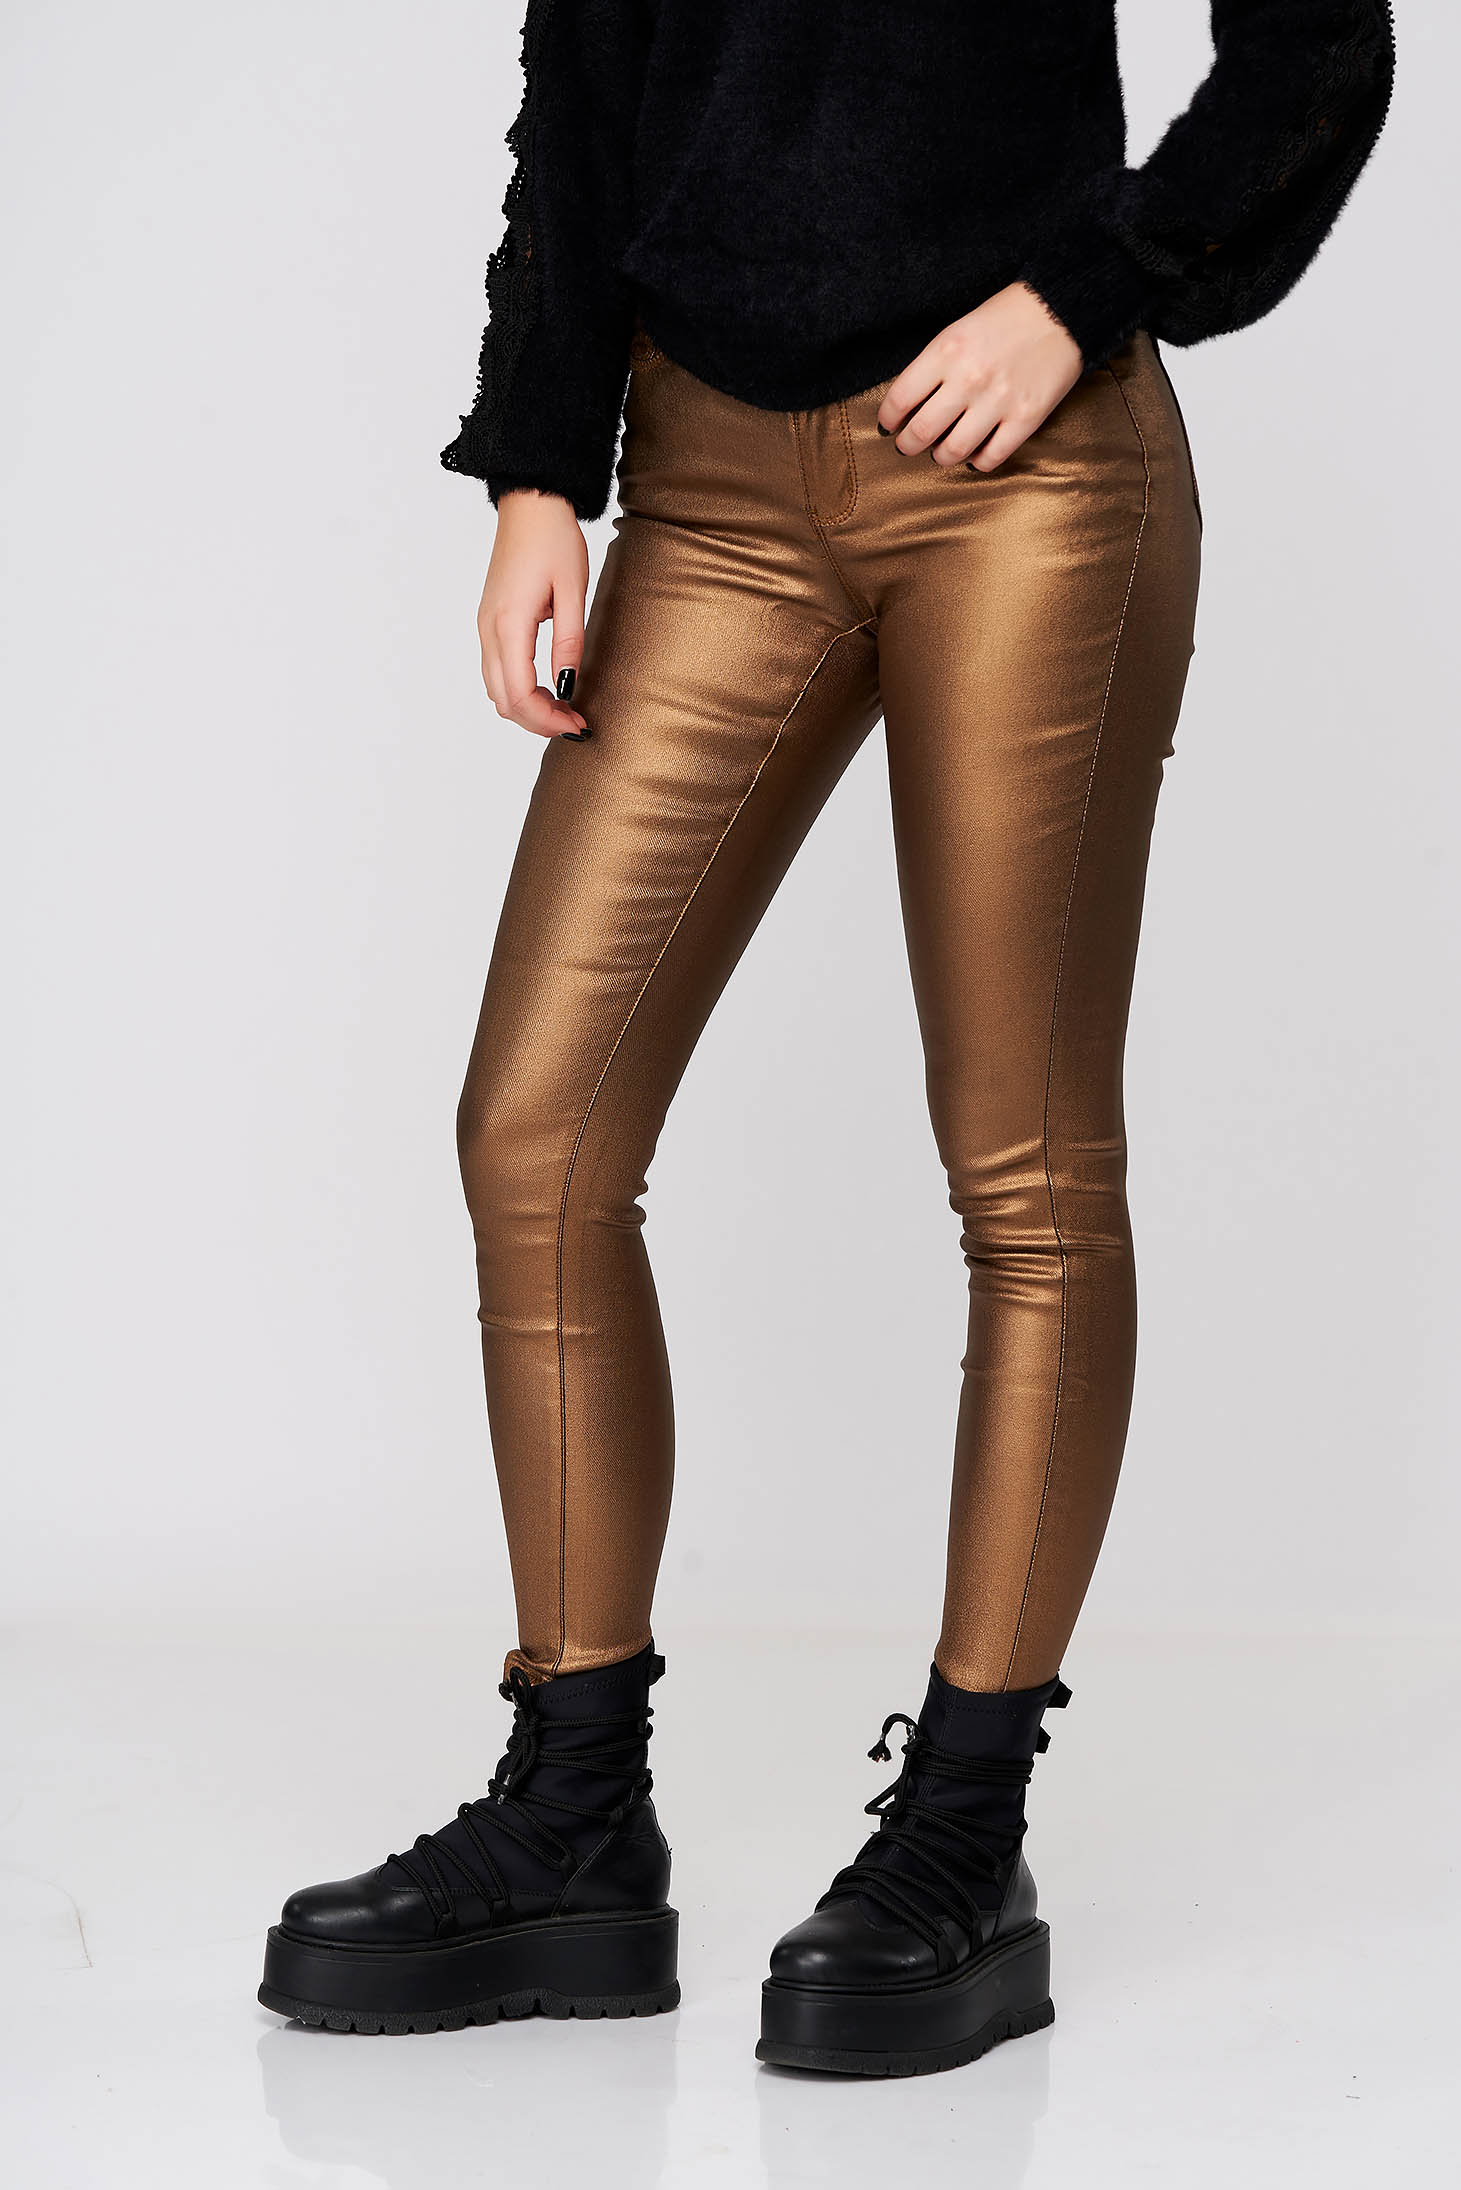 Copperbrown trousers casual with tented cut from shiny fabric medium waist